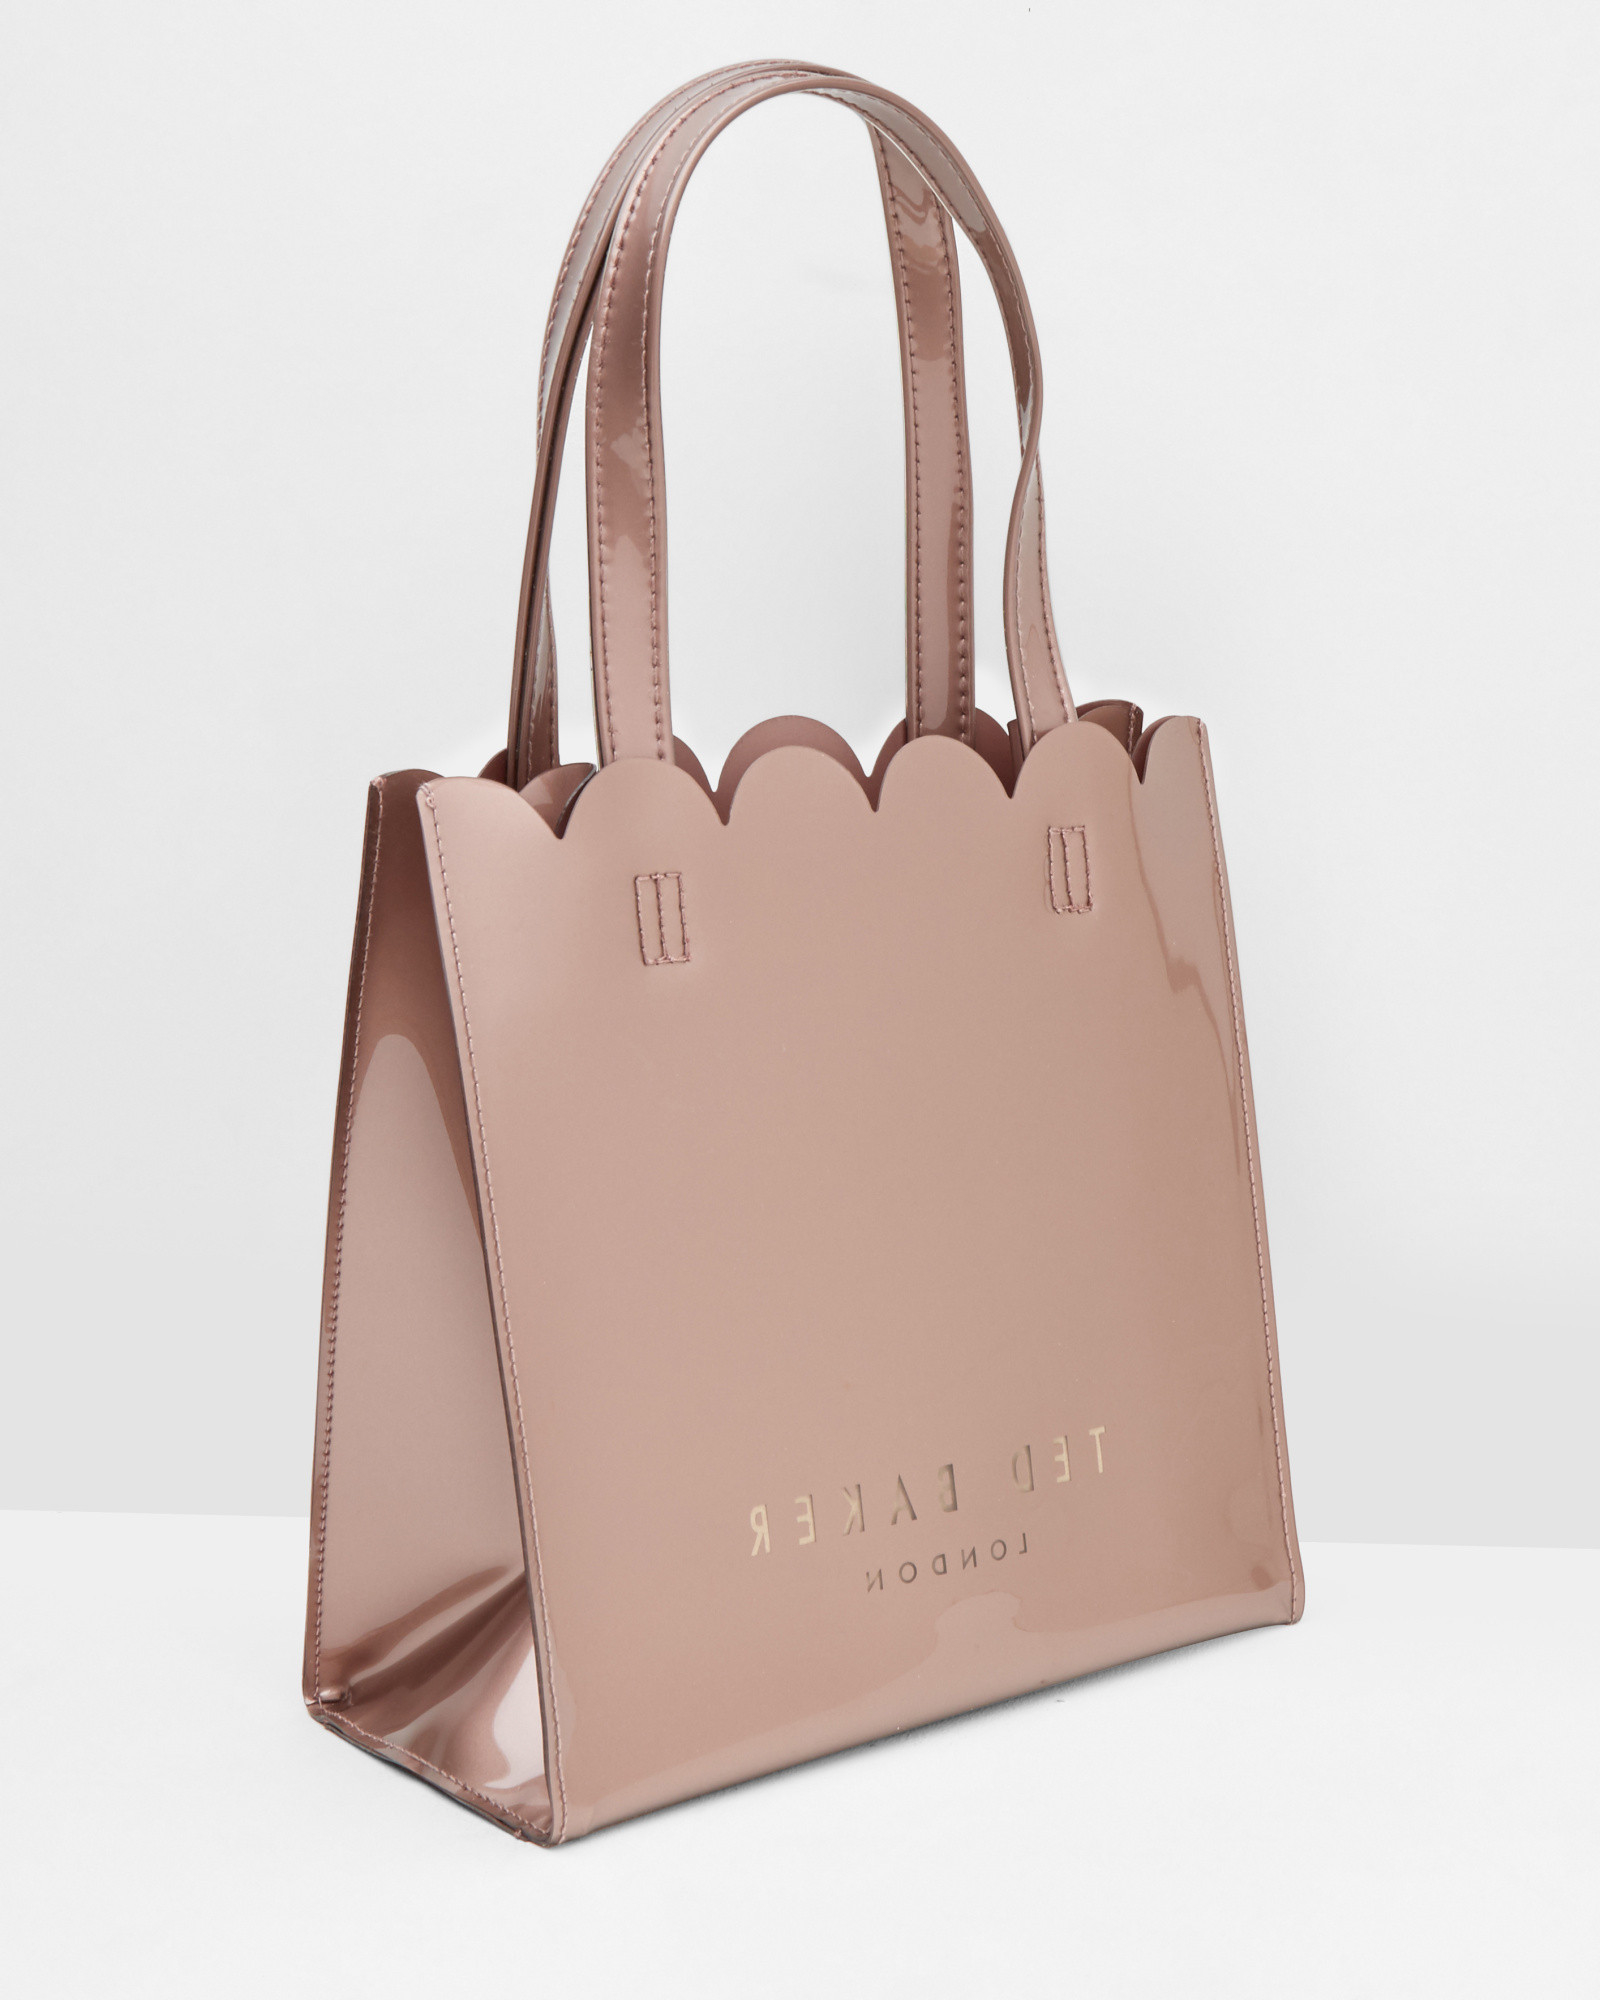 Ted Baker Scallop Edge Large Shopper Bag in Pink - Lyst d63fa1312